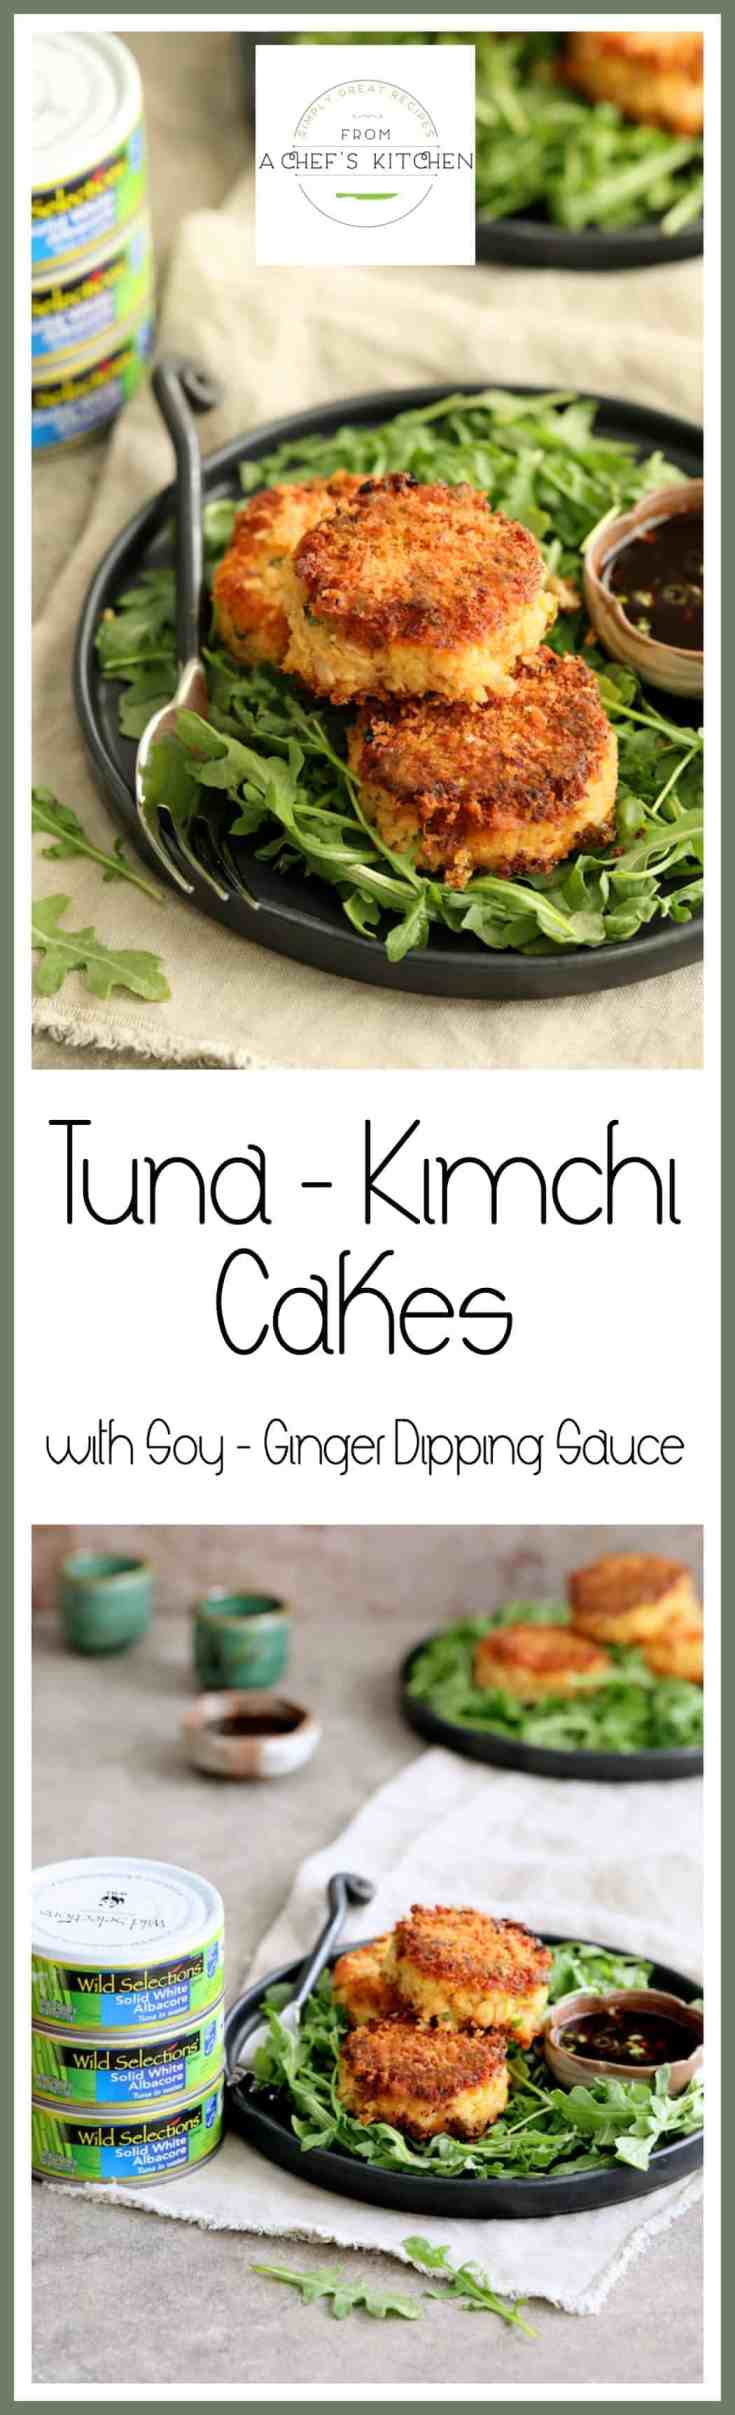 Tuna Kimchi Cakes with Soy Ginger Dipping Sauce are crispy, delicious and packed with flavor!  Made with Wild Selections® Solid White Albacore Tuna, it's tuna you can feel good about eating. @wildselections (https://www.pinterest.com/wildselections) #WildSelections #SelectSustainable #Ad